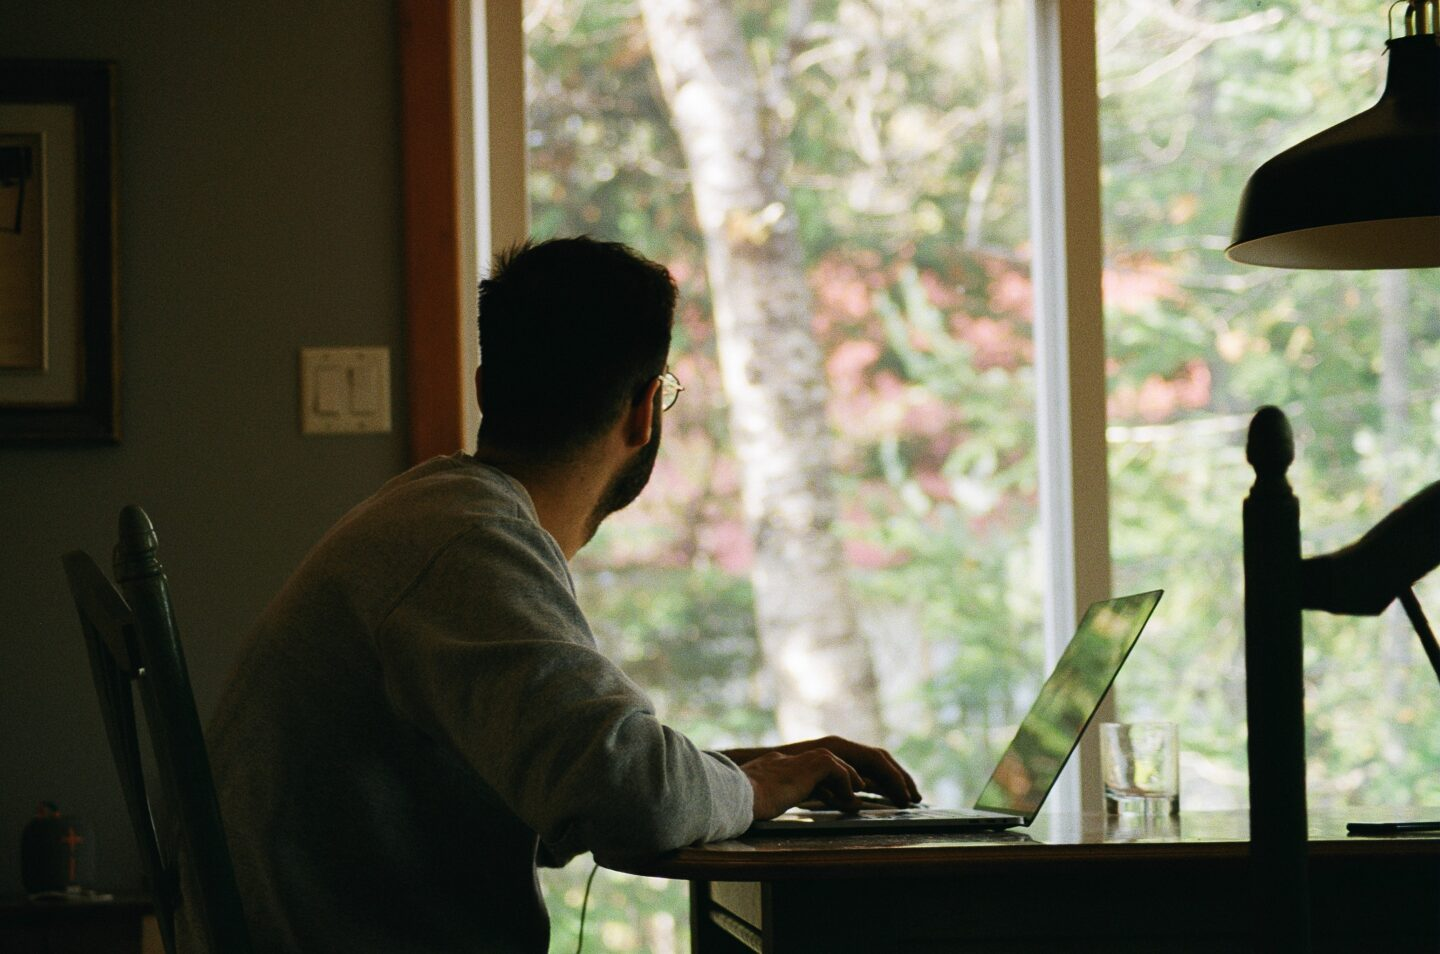 benefits of remote work on health and lifestyle